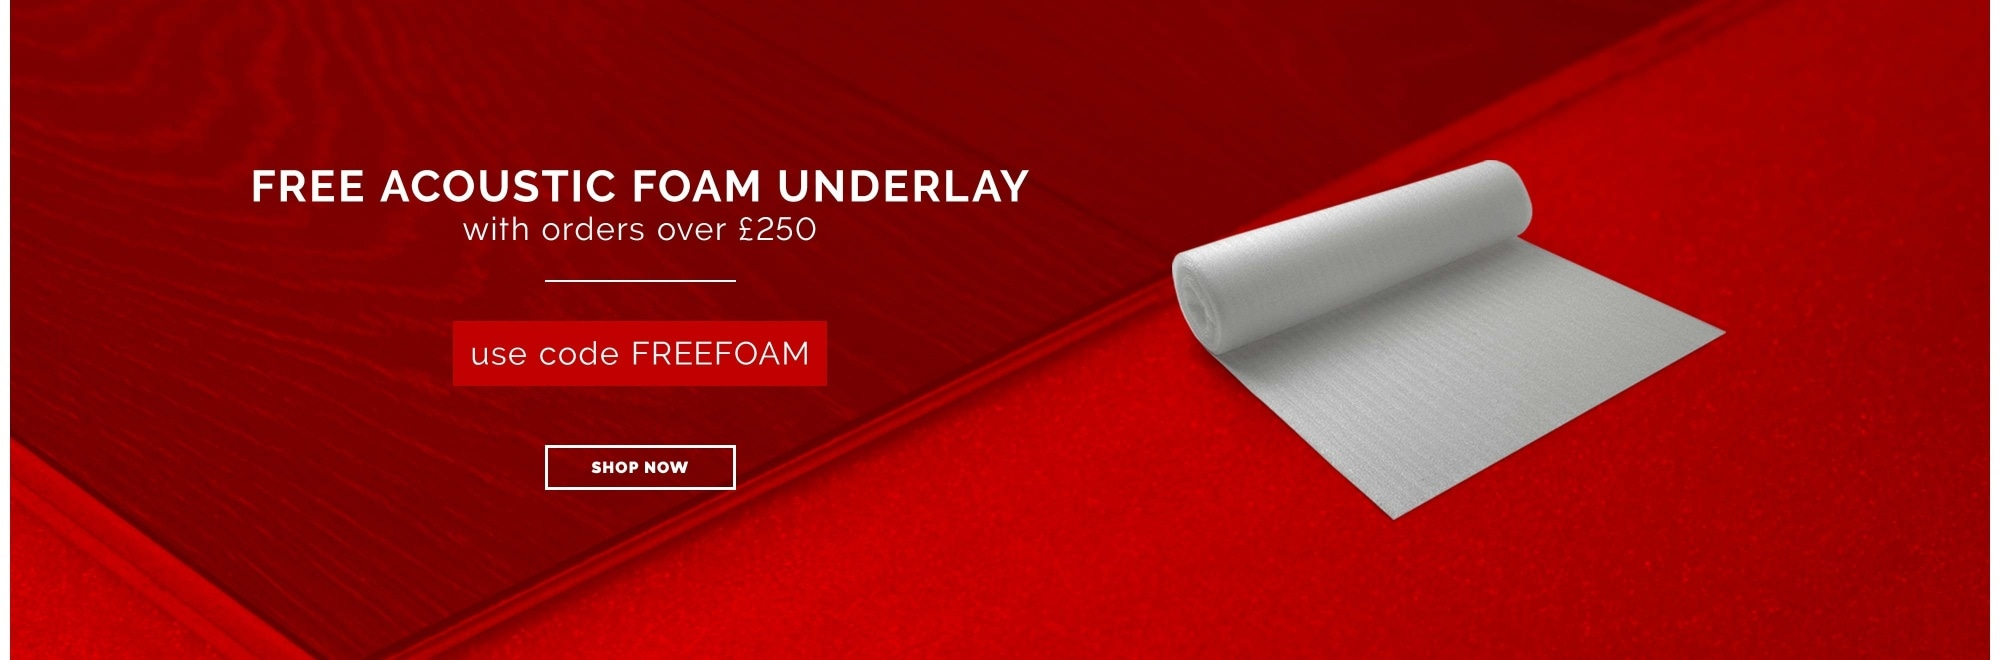 FREE underlay with flooring orders over £250